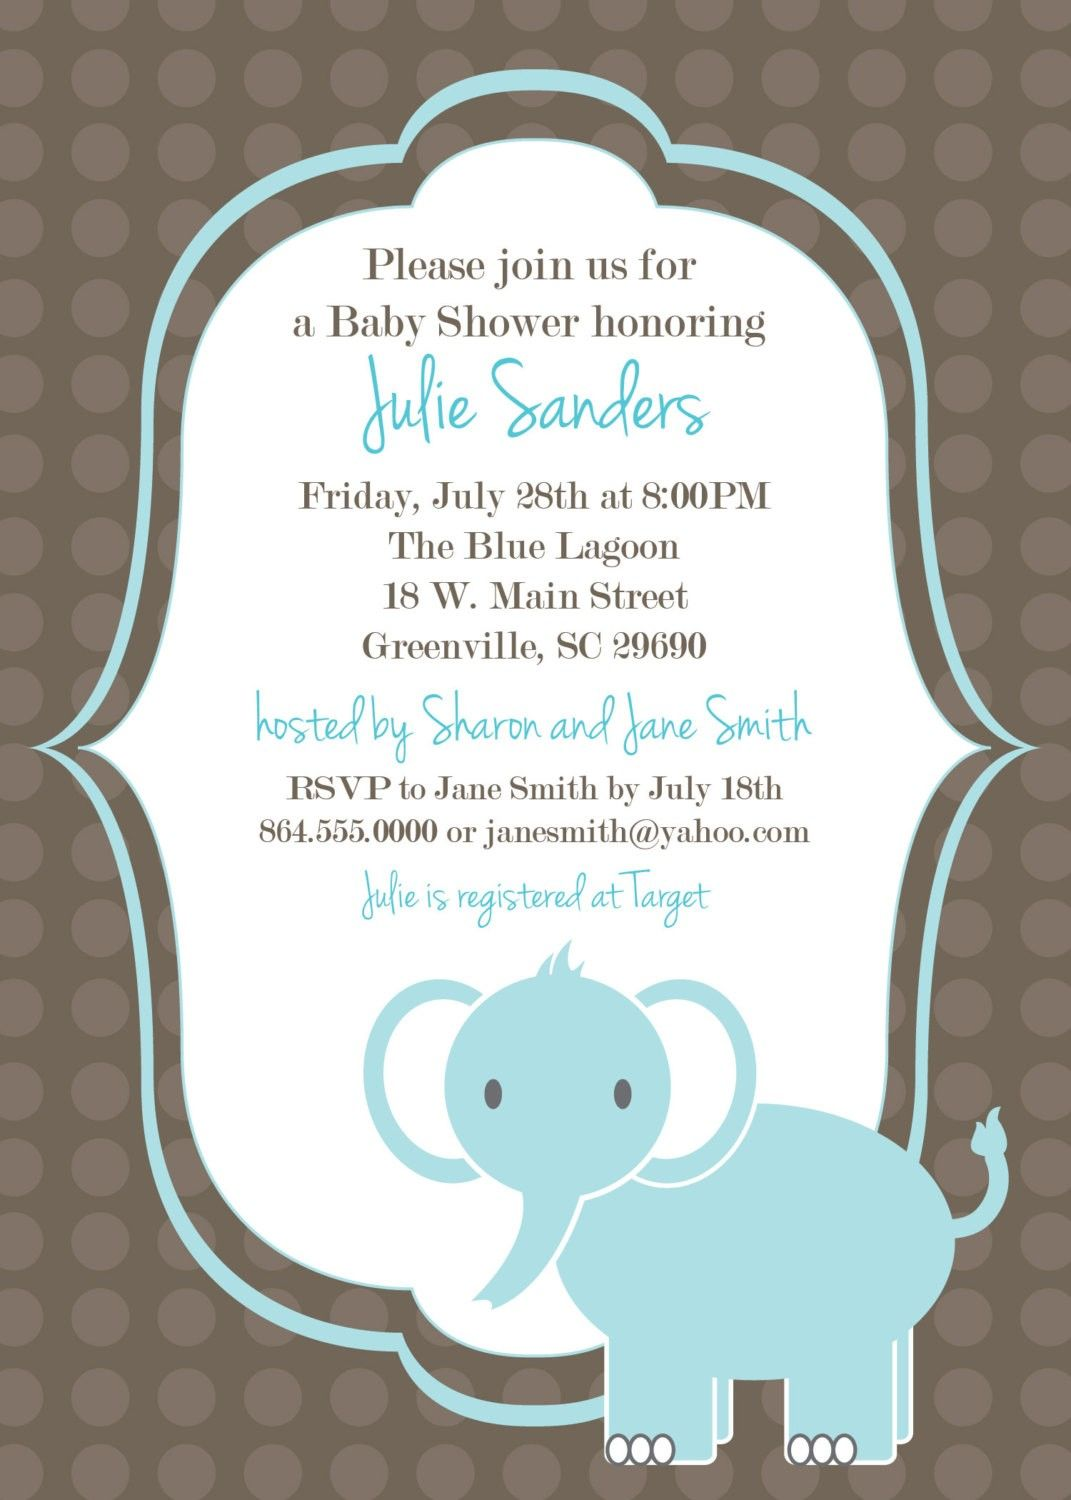 Baby Shower Templates Kleobeachfixco - Free printable baby shower invitations templates for girl